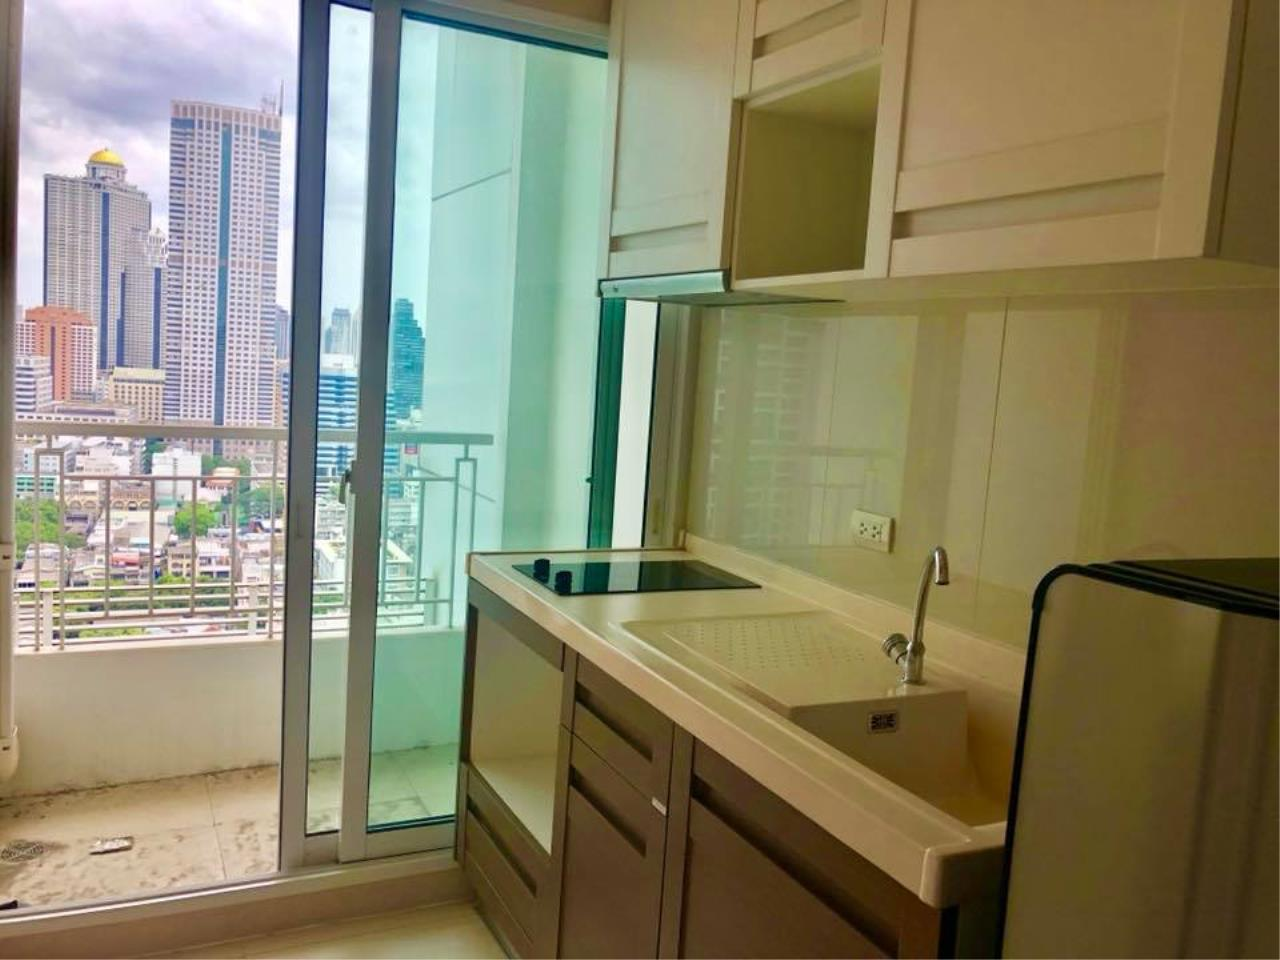 Quality Life Property Agency's S A L E !! || IVY SATHORN 10|| 1BR 33.64 Sq.m. NEW UNIT!! 9